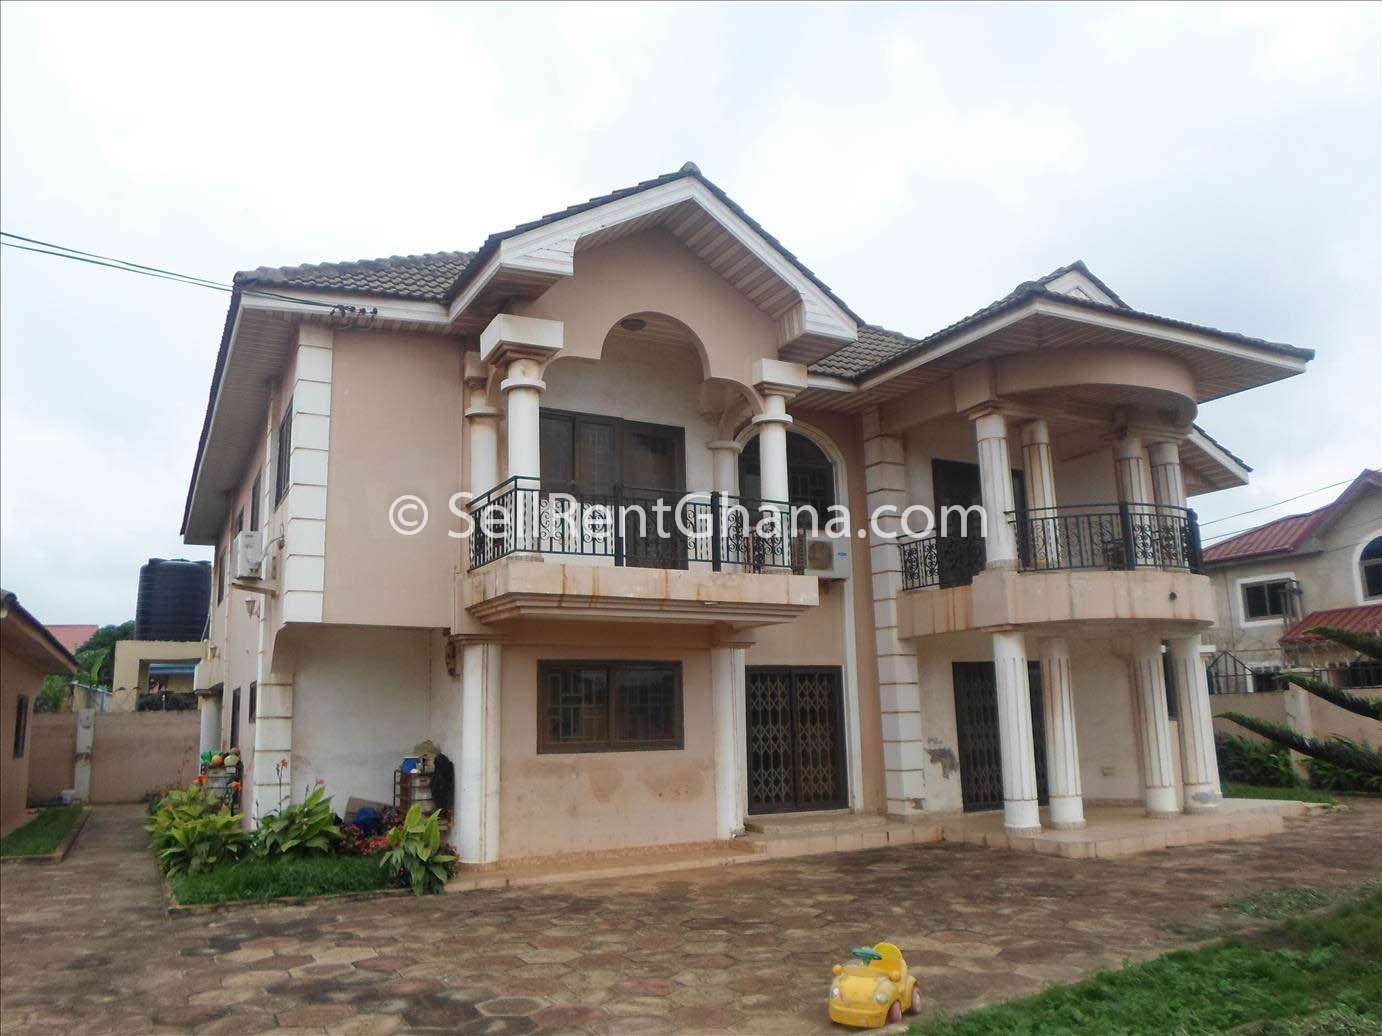 6 bedroom house for sale in spintex sellrent ghana for 6 bedroom house with swimming pool for sale